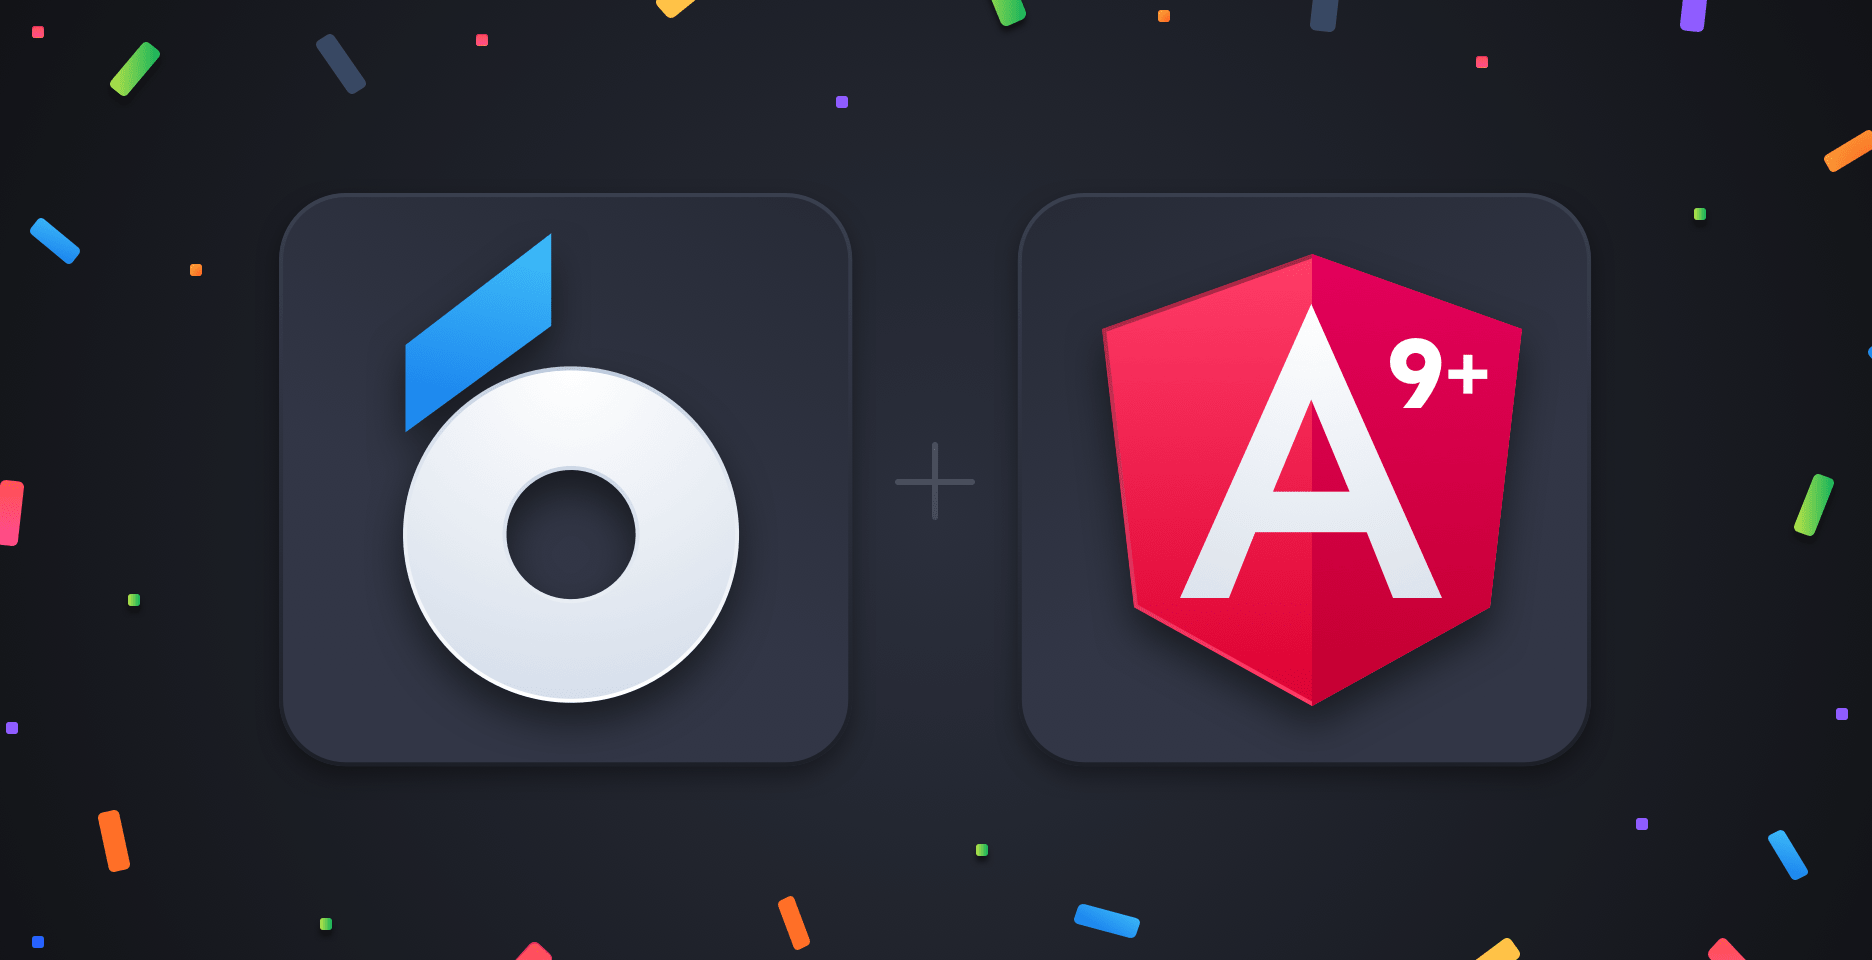 UI Bakery apps builder updated to Angular 9+